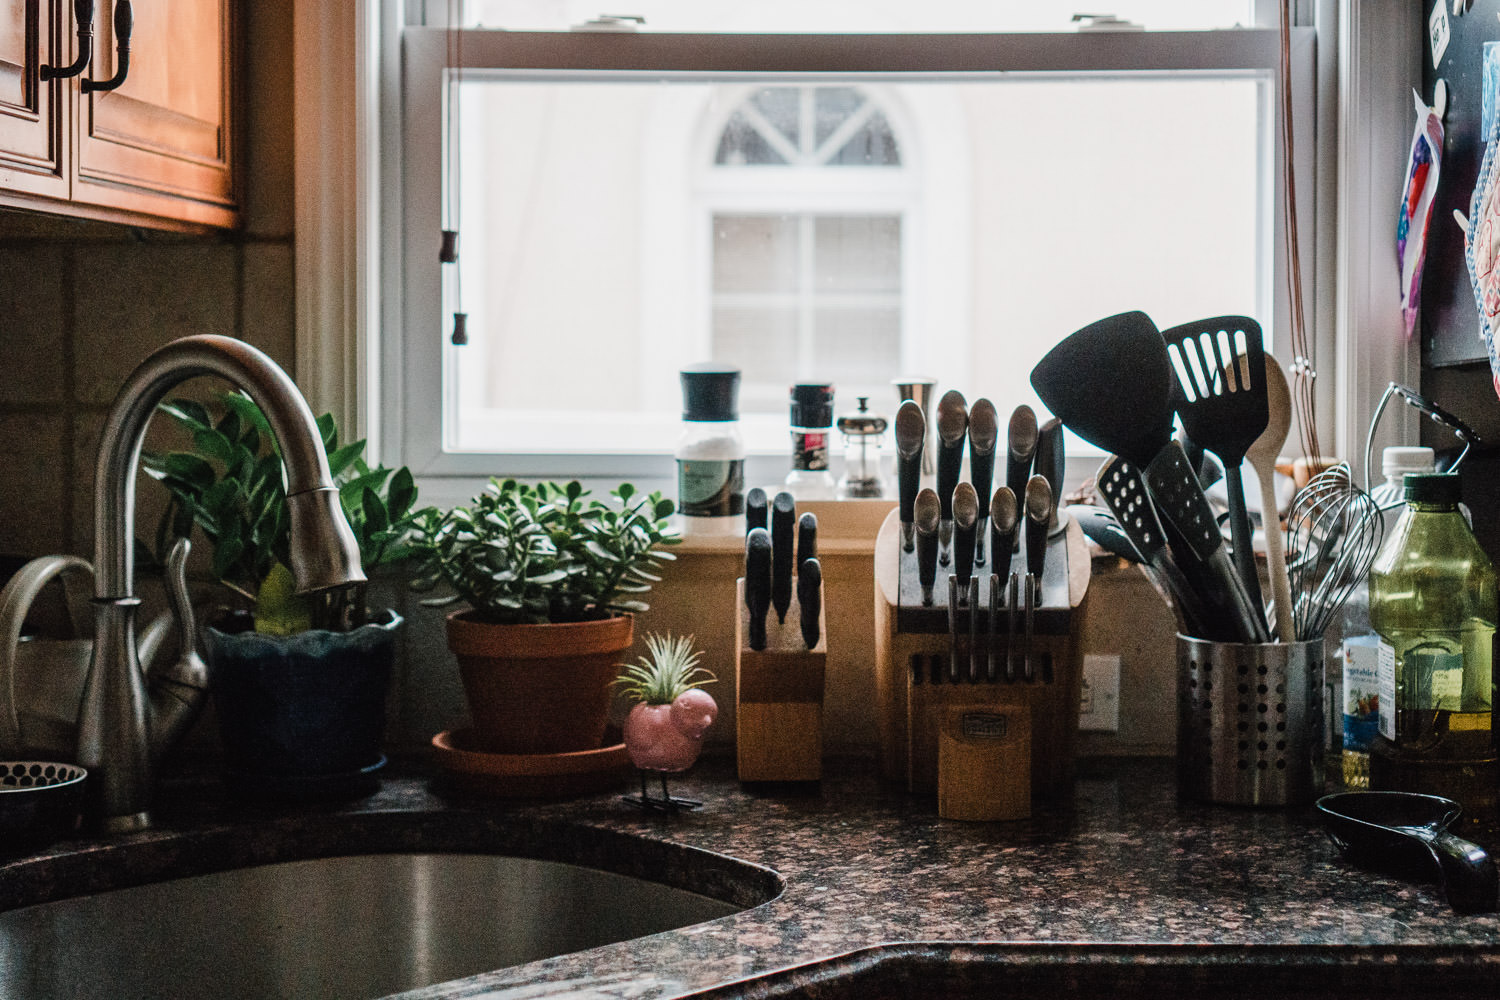 A kitchen counter in November.